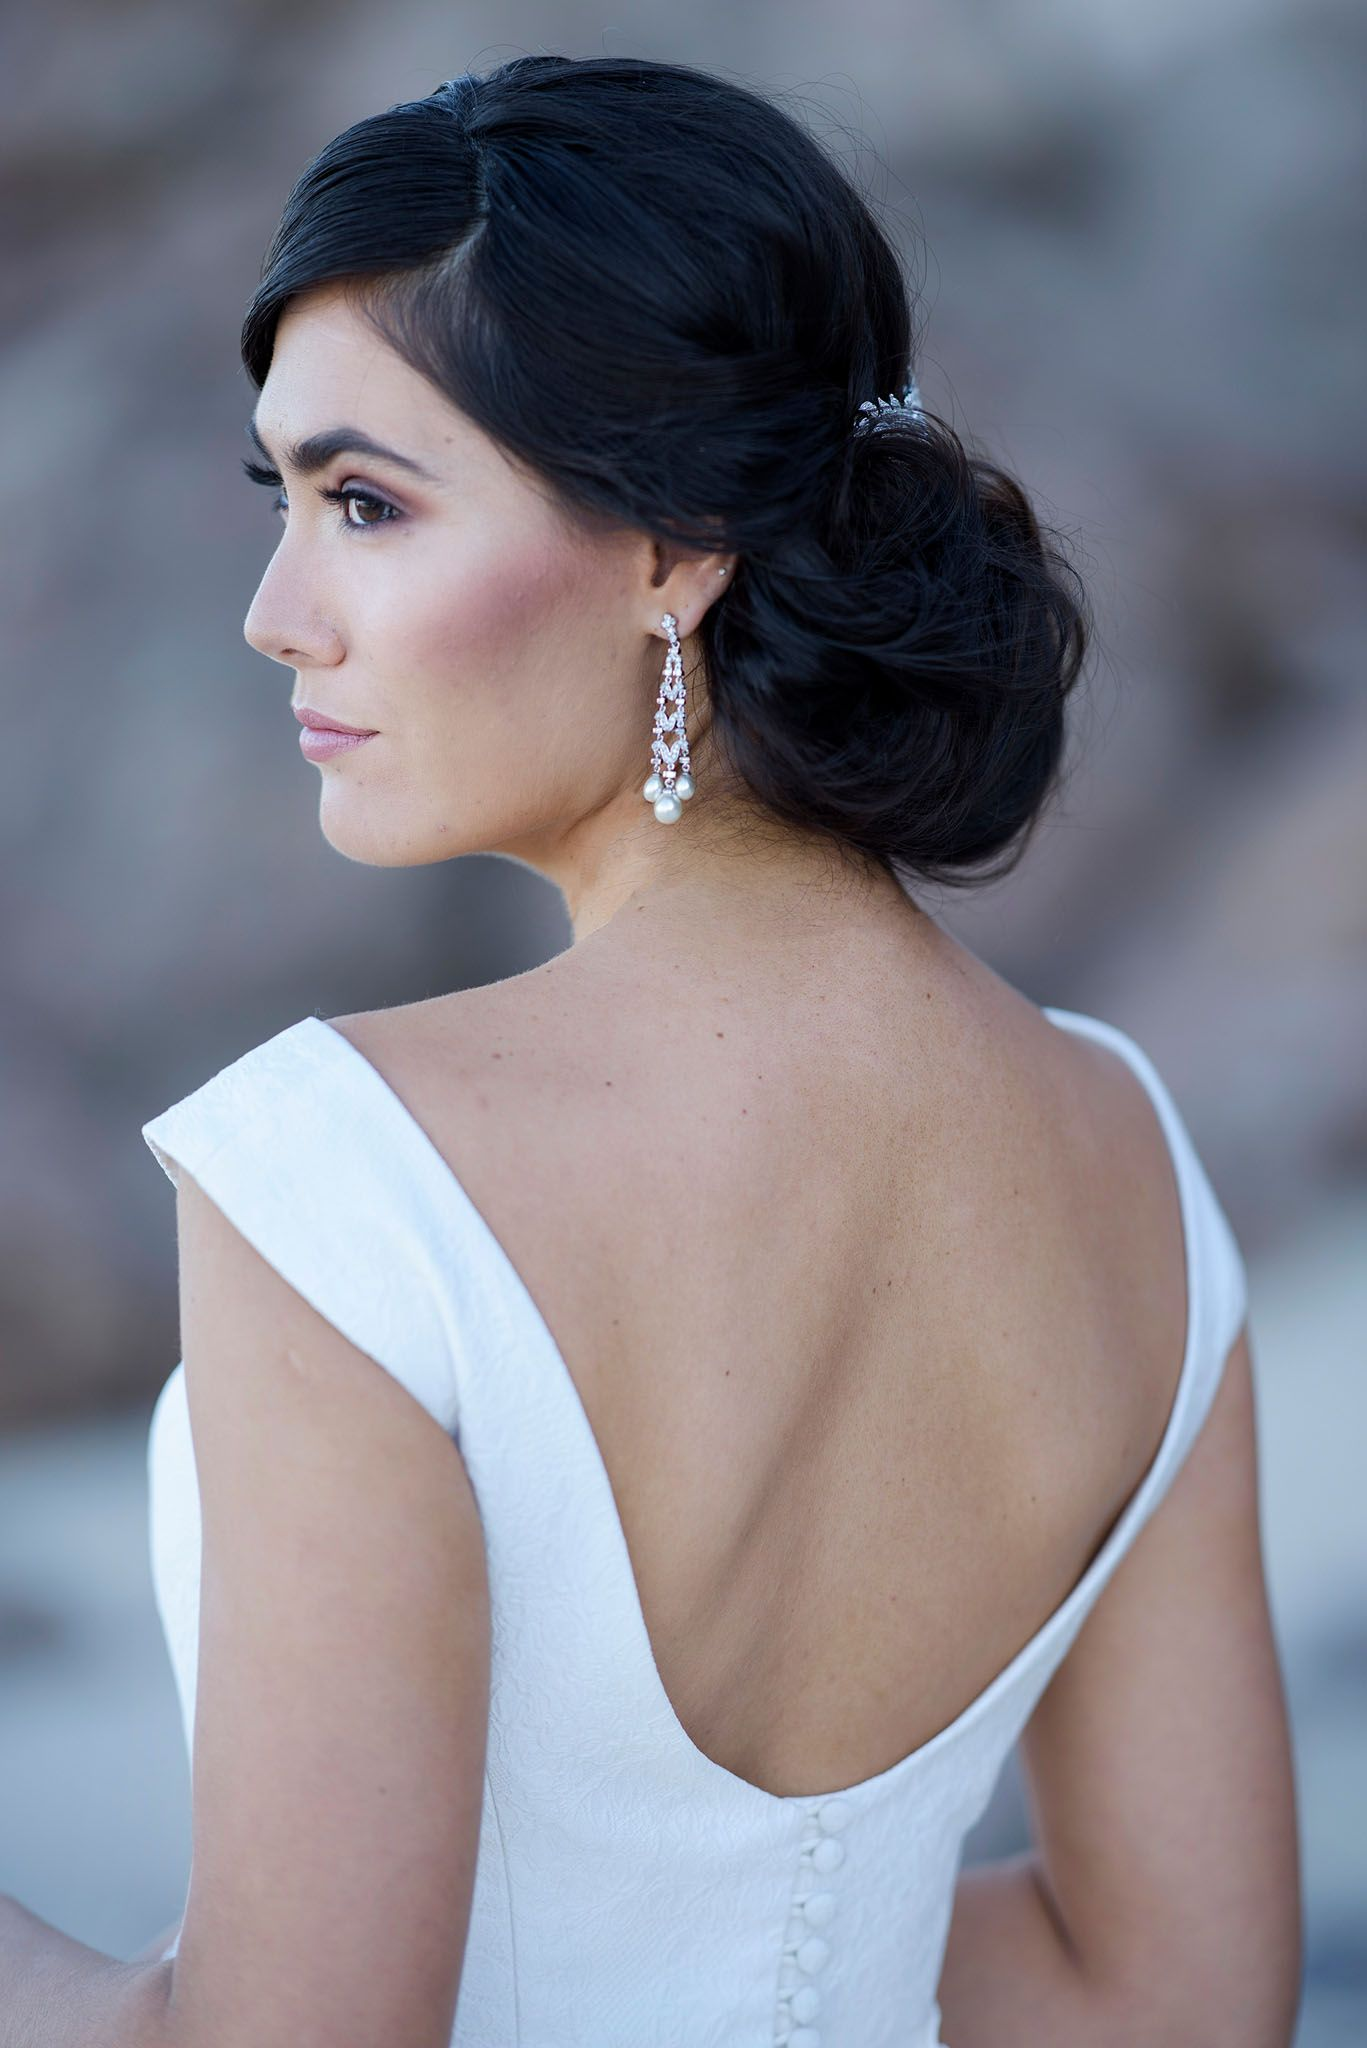 Dramatic Back Detail On The Victoria Bertossi Brides Gown From